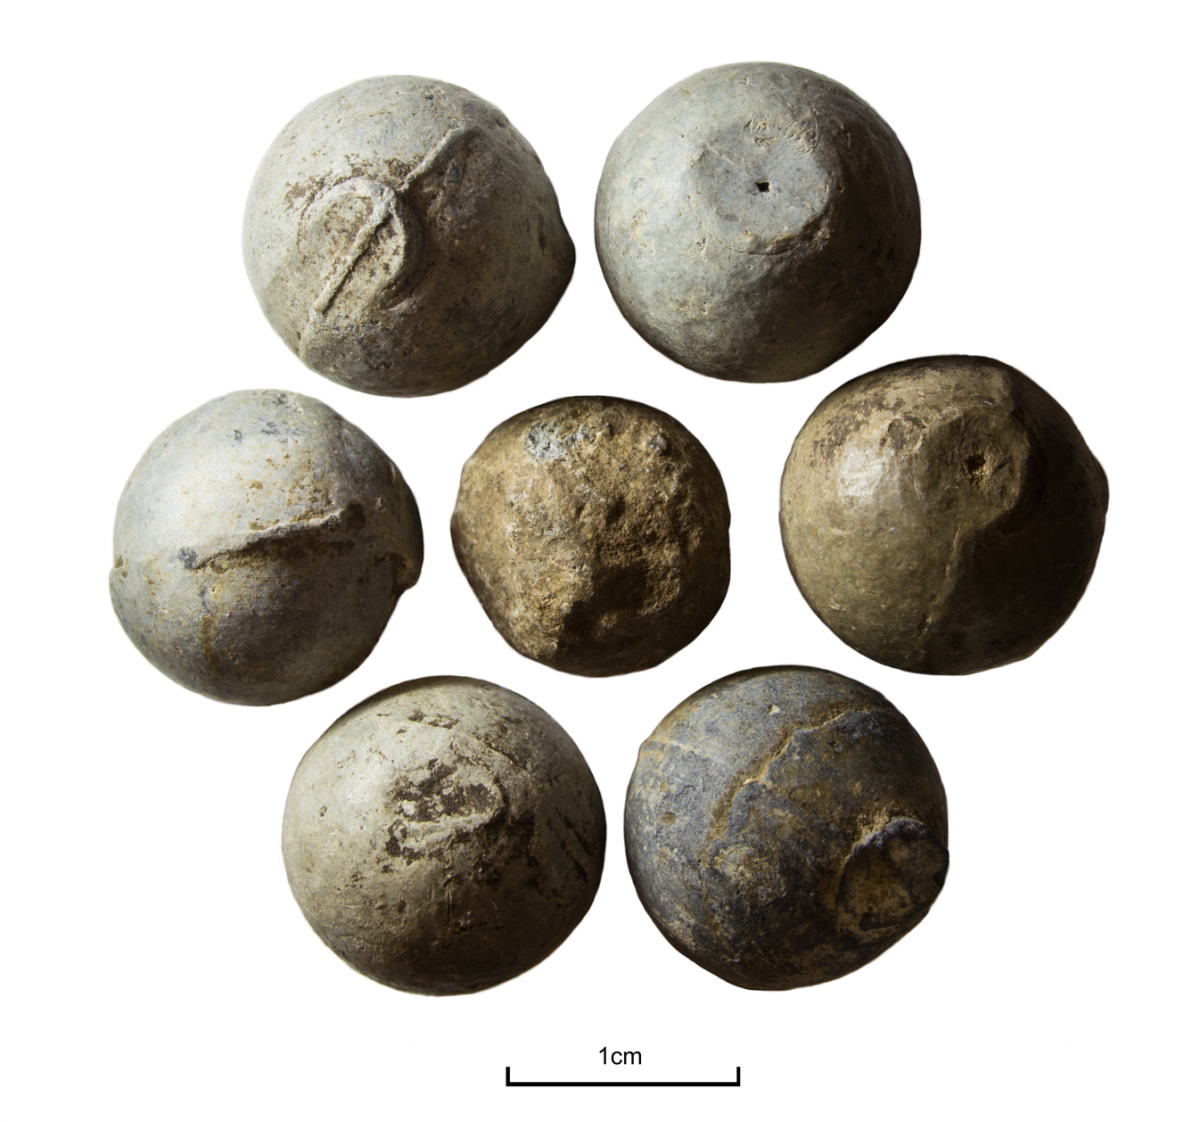 Lead musket balls recovered from a post-medeival battlefield site